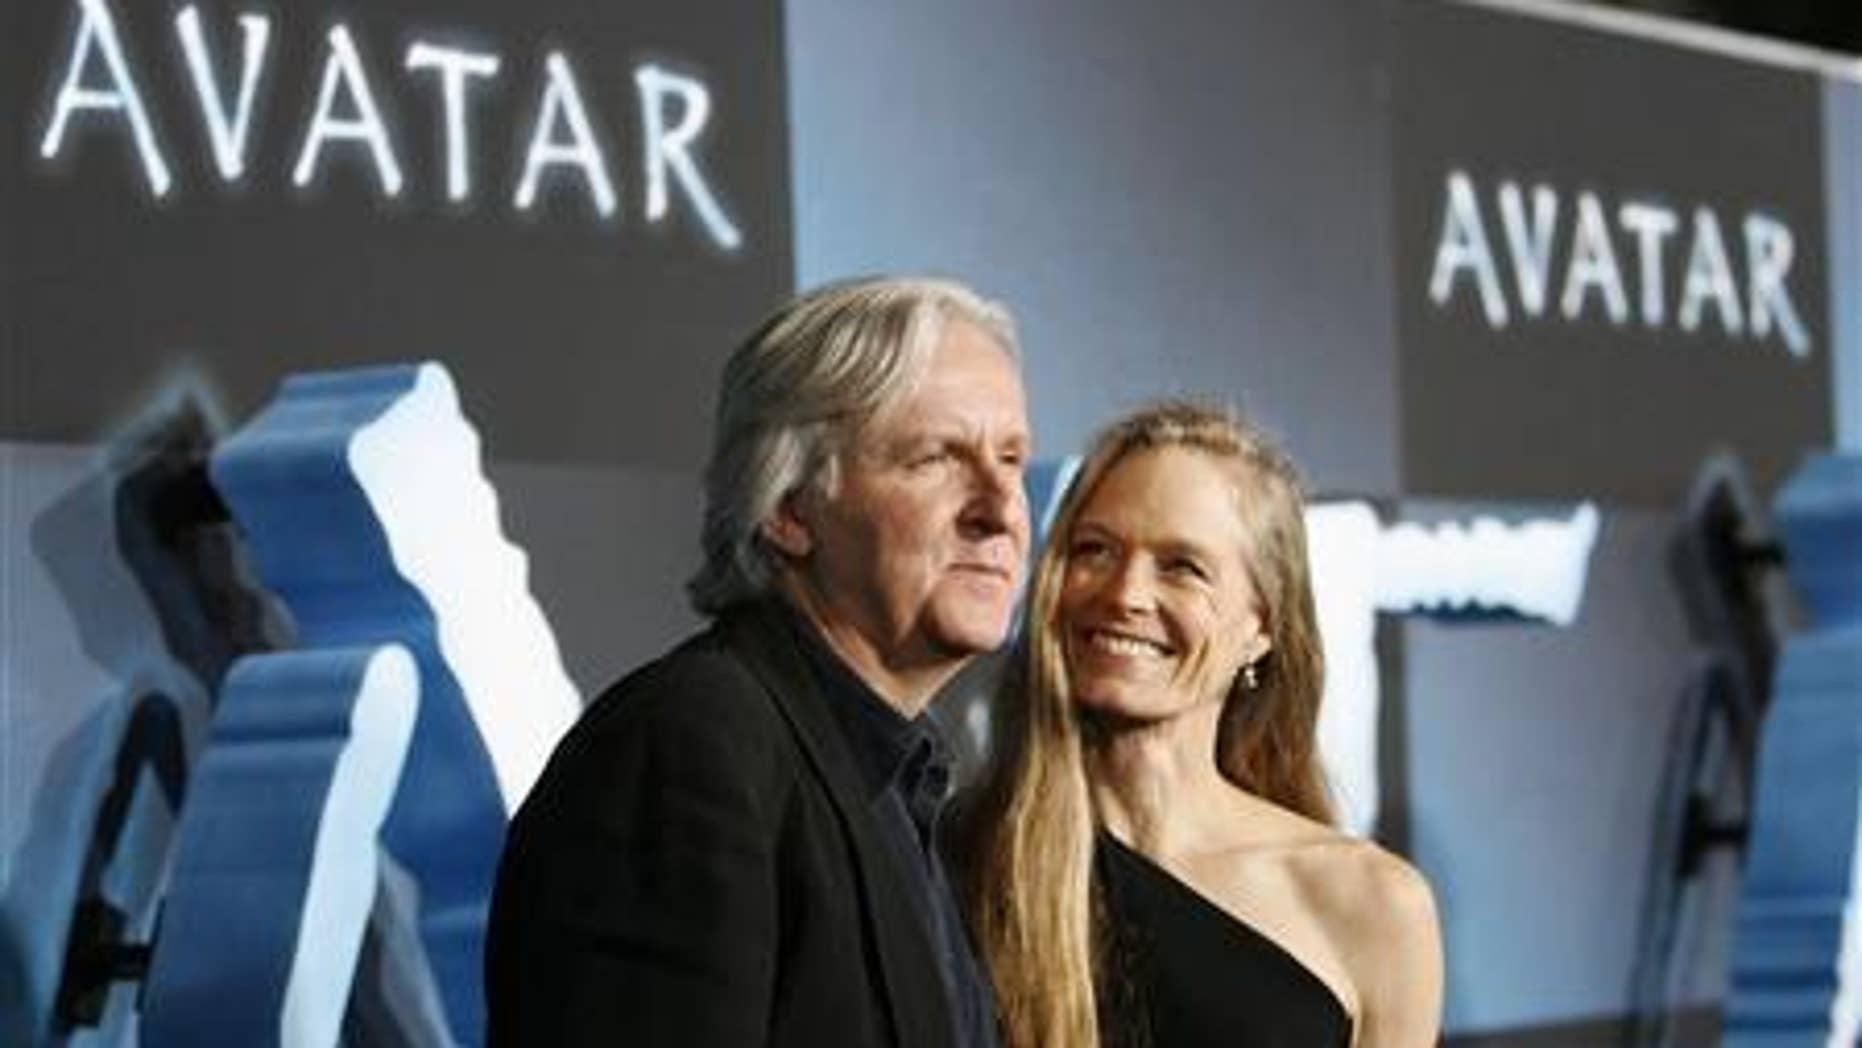 James Cameron and Suzy Amis at the premiere of 'Avatar.'